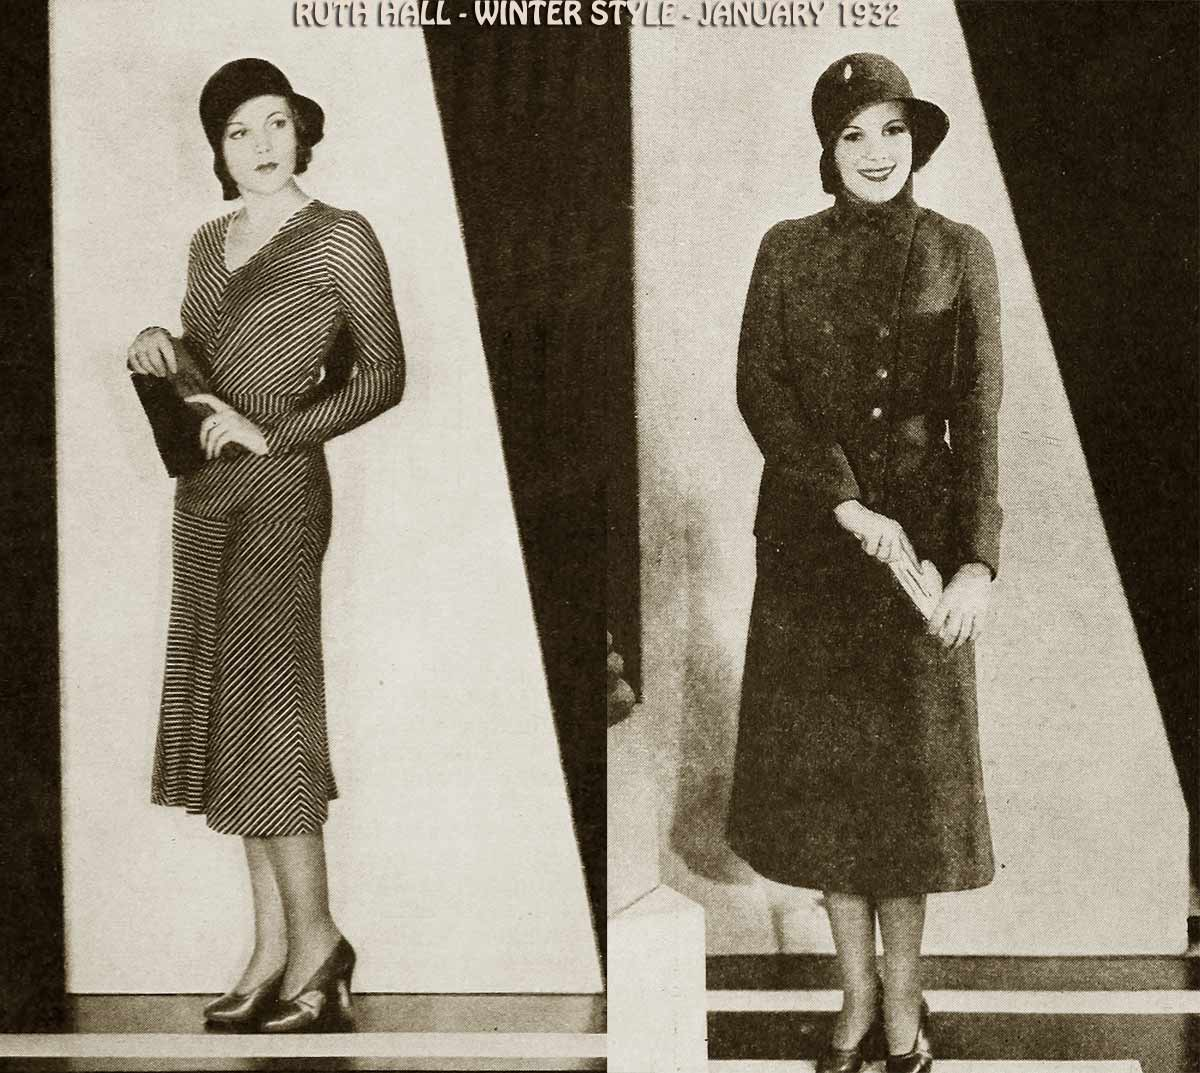 1930s fashion 1930s fashion was the decade of elegance & glamour the 1930s are often thought of as a boring decade, in between the exciting, decadent 1920s & the 1940s.